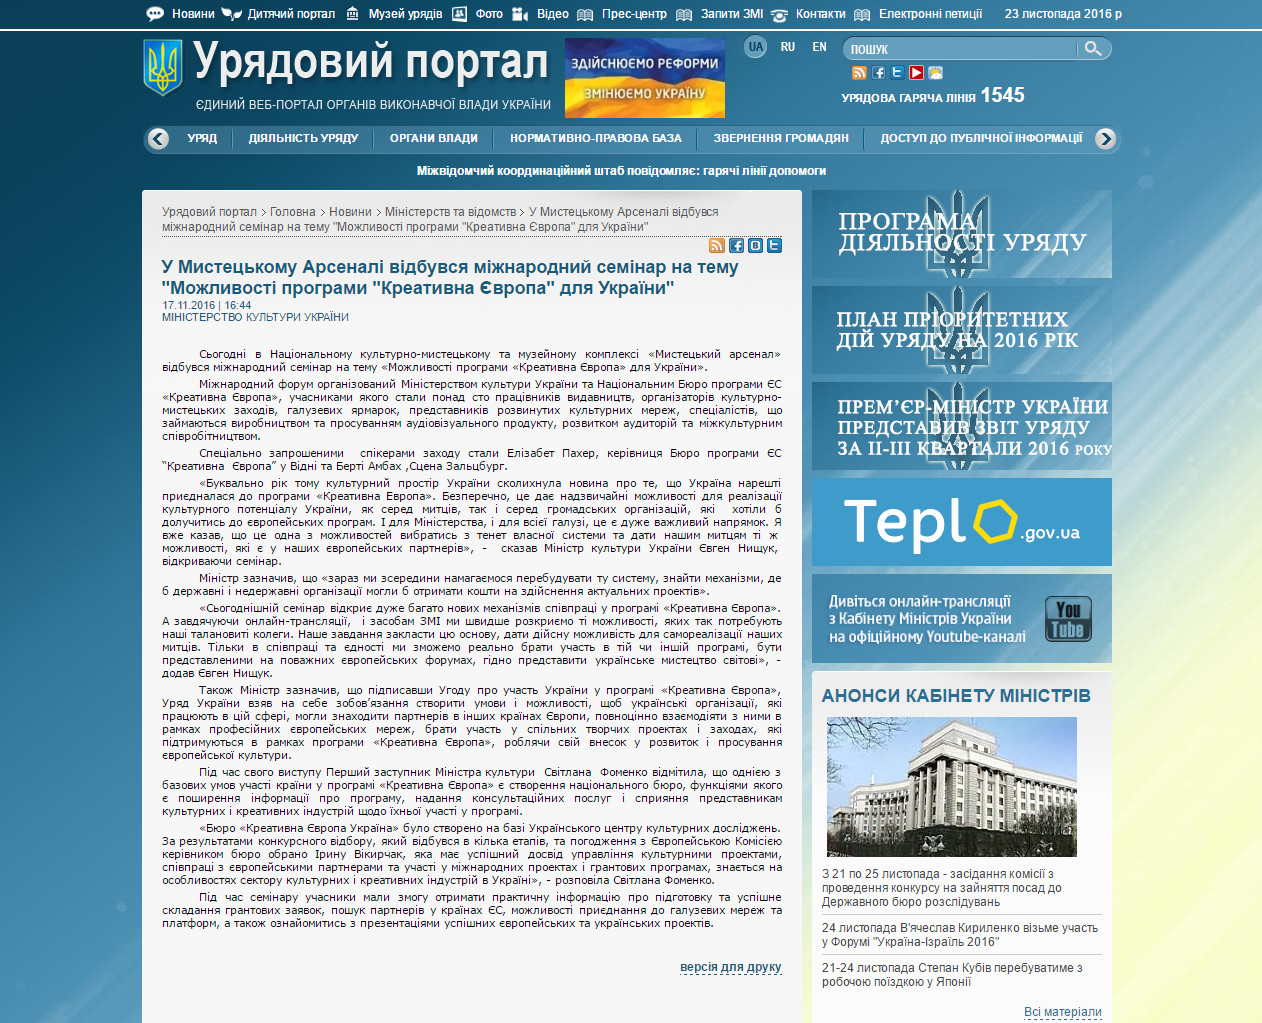 http://www.kmu.gov.ua/control/uk/publish/article?art_id=249499423&cat_id=244277212